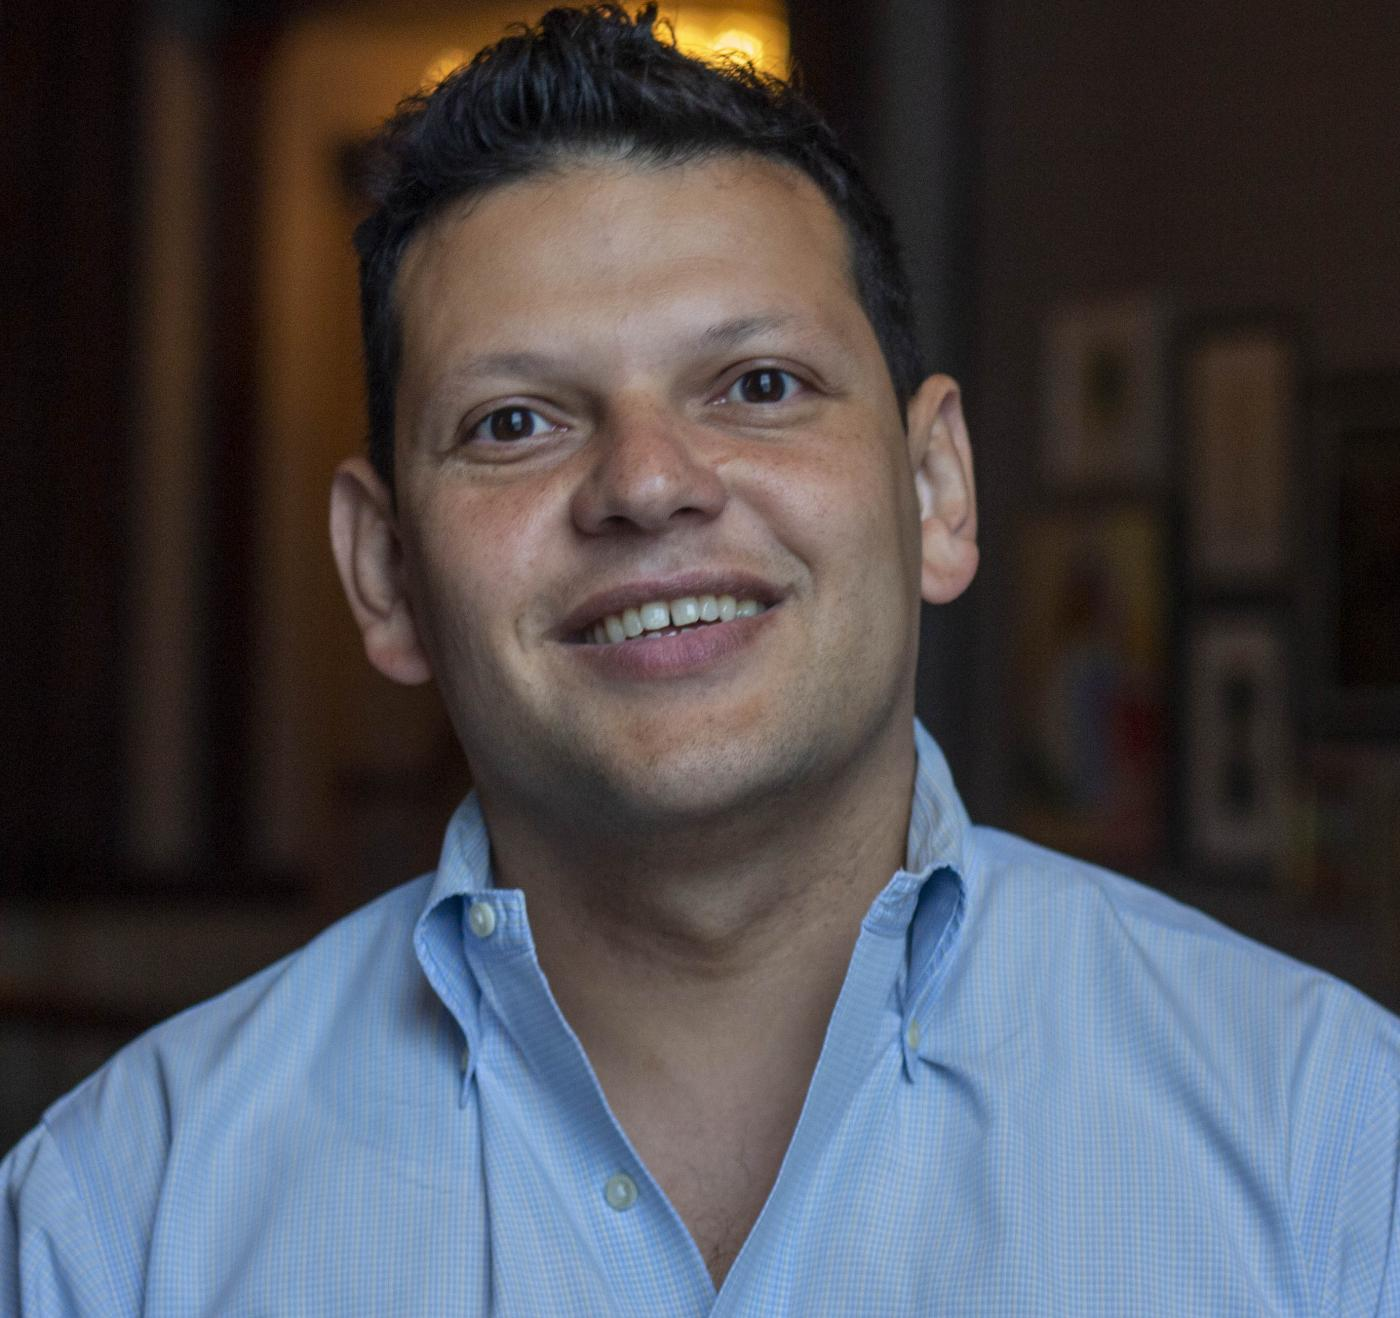 Head shot image of board member Ivan Espinoza-Madrigal; he is wearing a blue shirt and smiling.